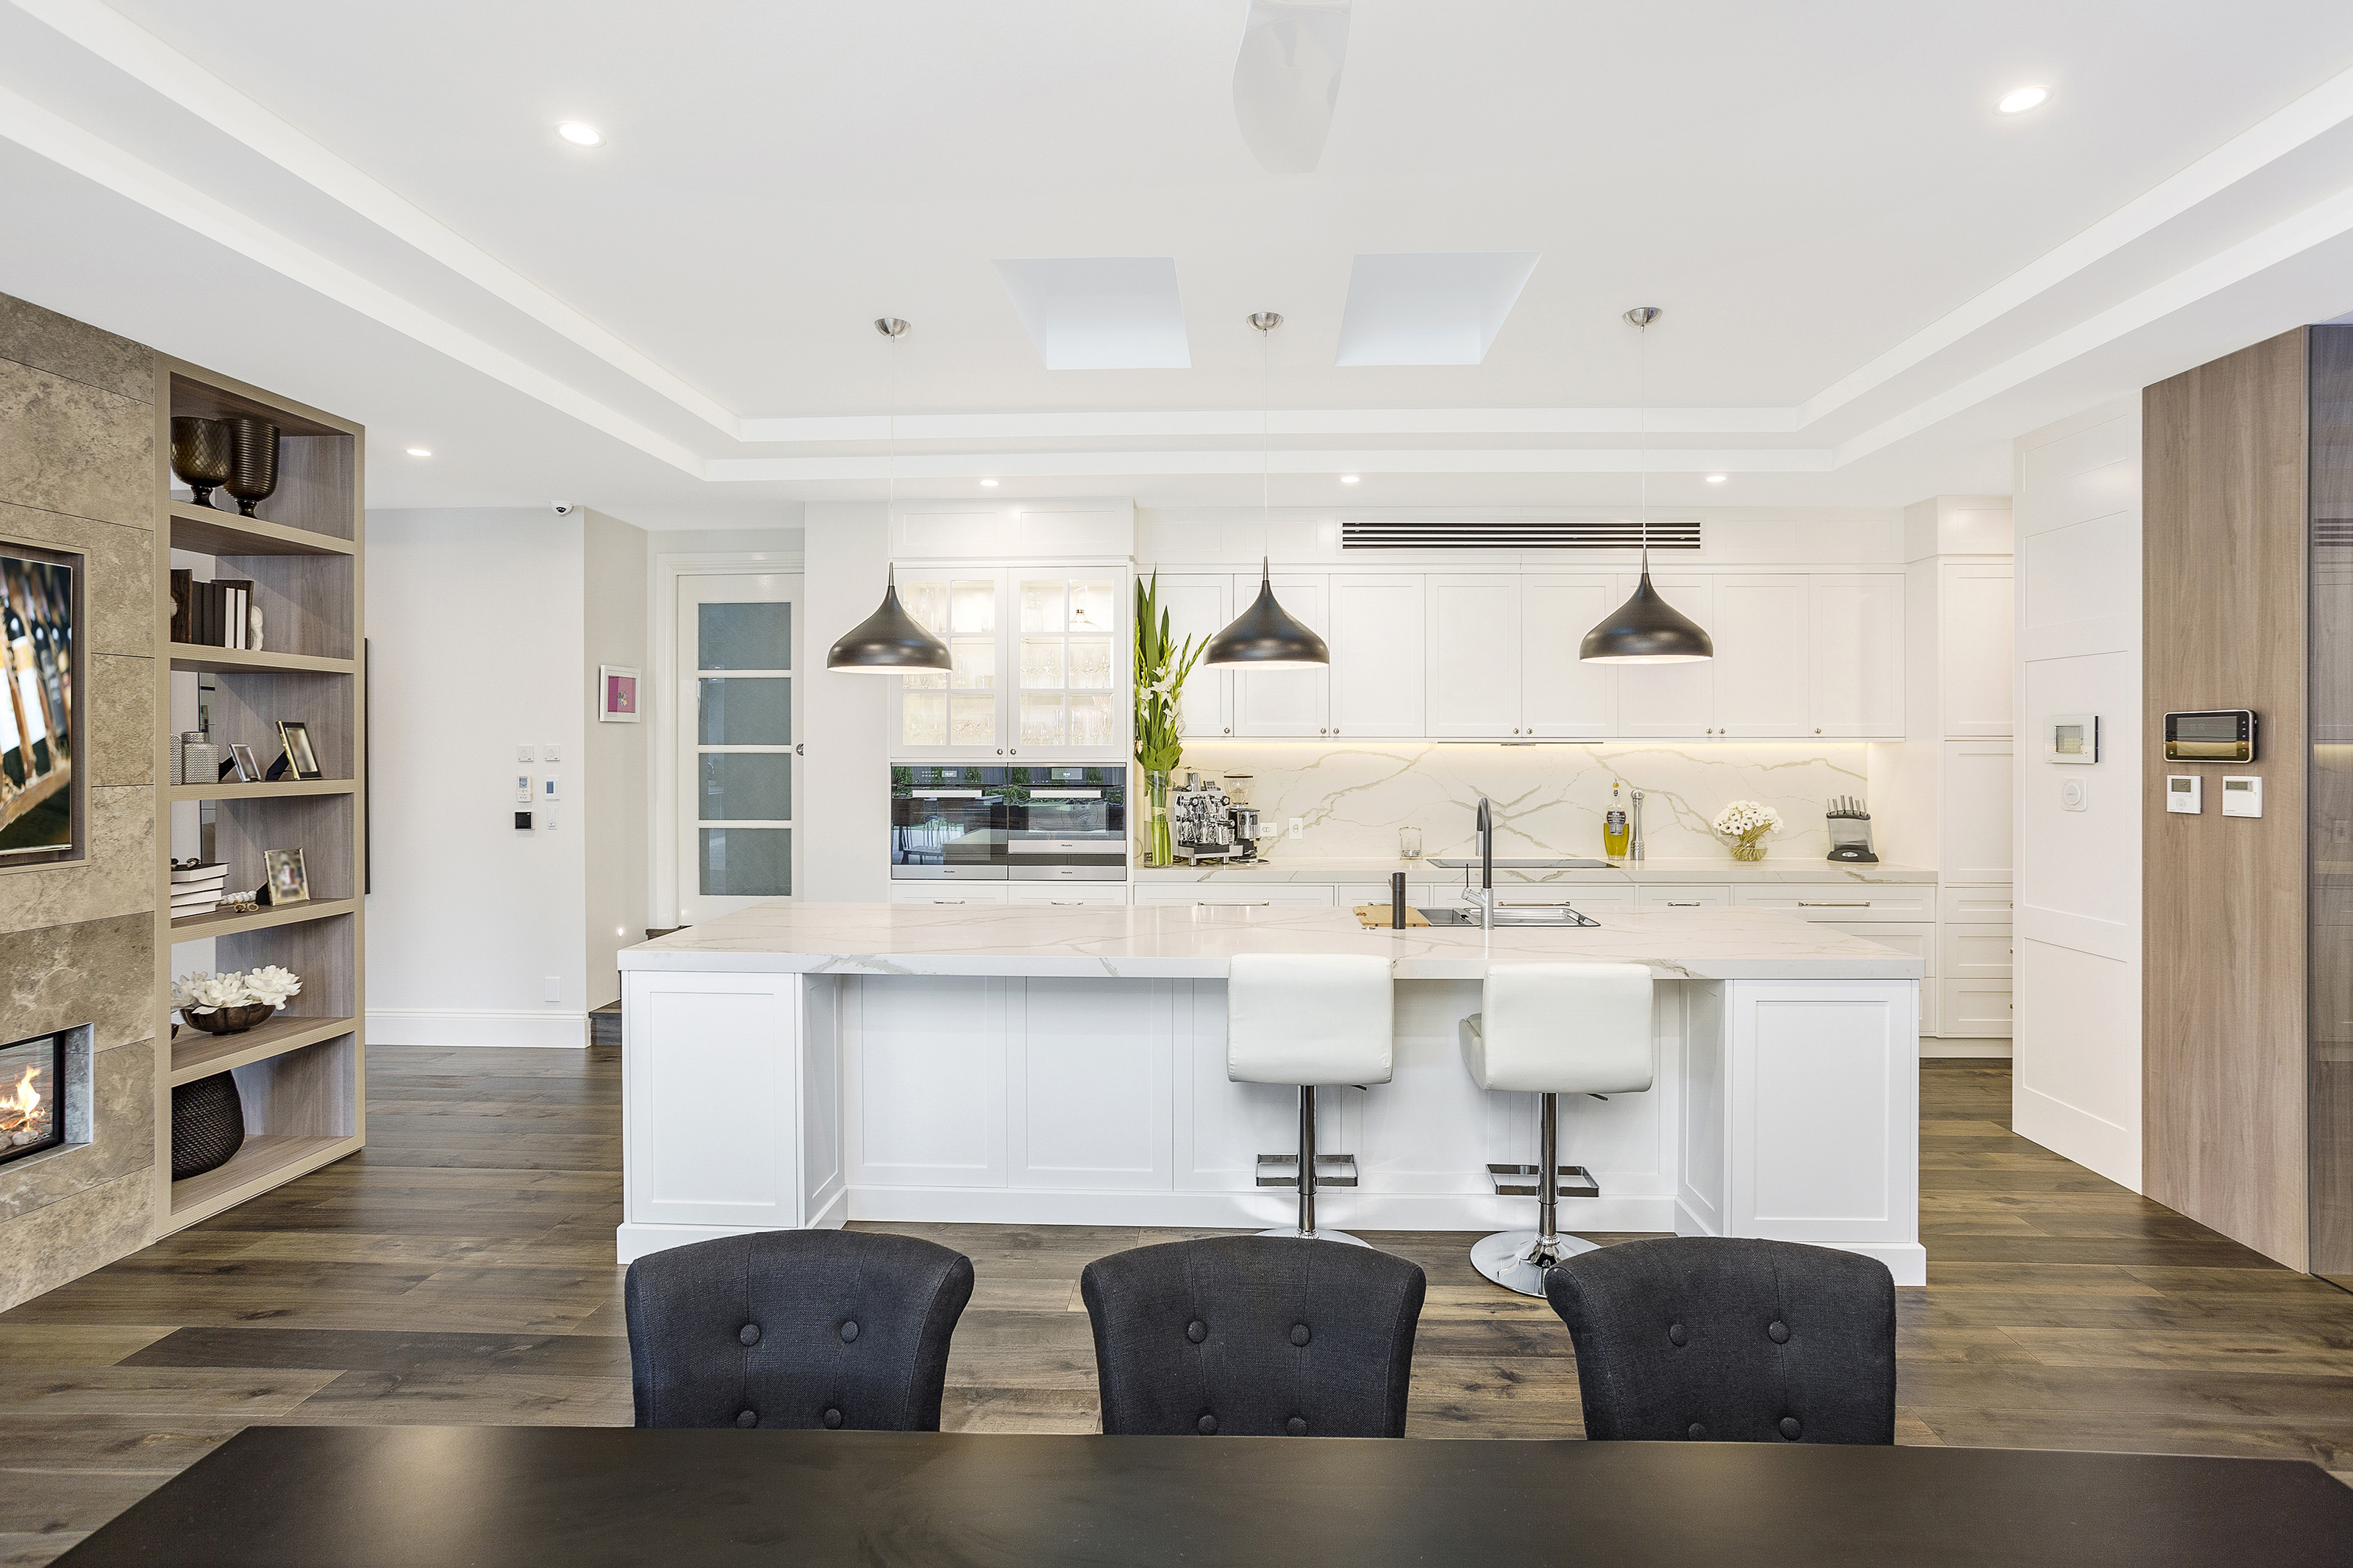 A high calibre custom home: clever lifestyle design - a contemporary kitchen